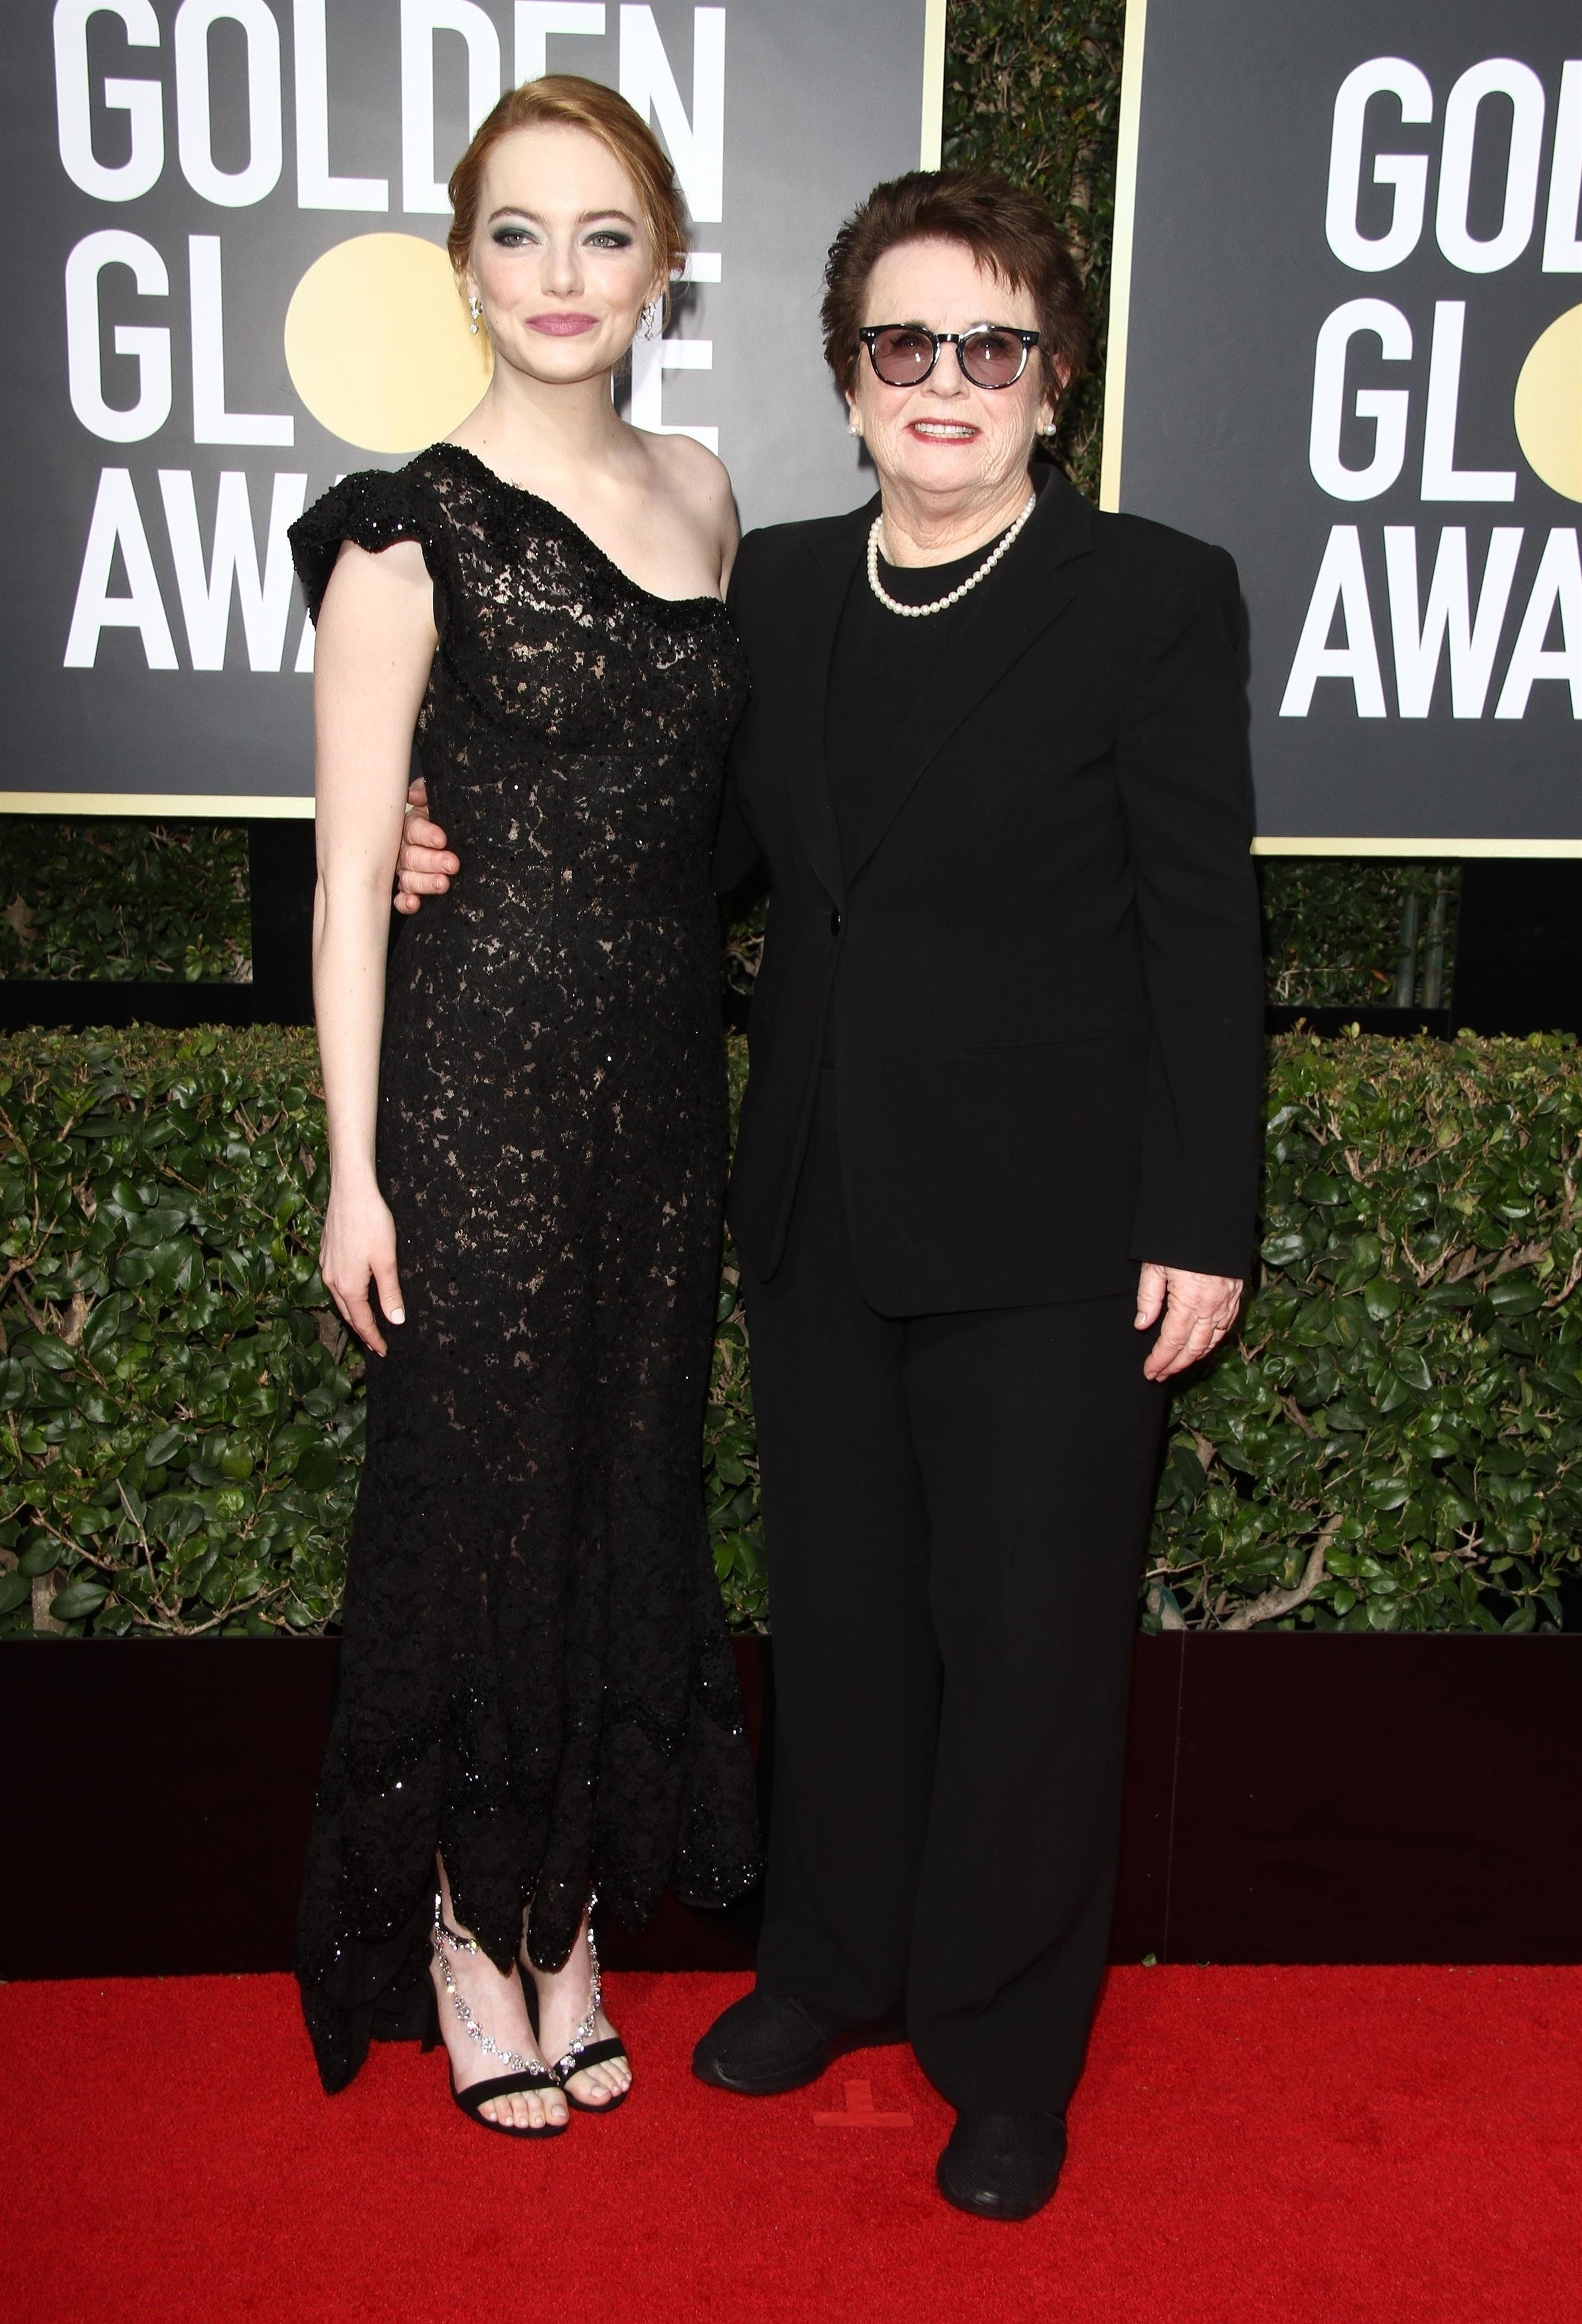 Beverly Hills, CA  - Celebrities arriving at the 75th annual Golden Globe awards held at the Beverly Hilton hotel in Beverly Hills.  Pictured: Emma Stone, Billie Jean King  BACKGRID USA 7 JANUARY 2018, Image: 359514893, License: Rights-managed, Restrictions: , Model Release: no, Credit line: Profimedia, AKM-GSI